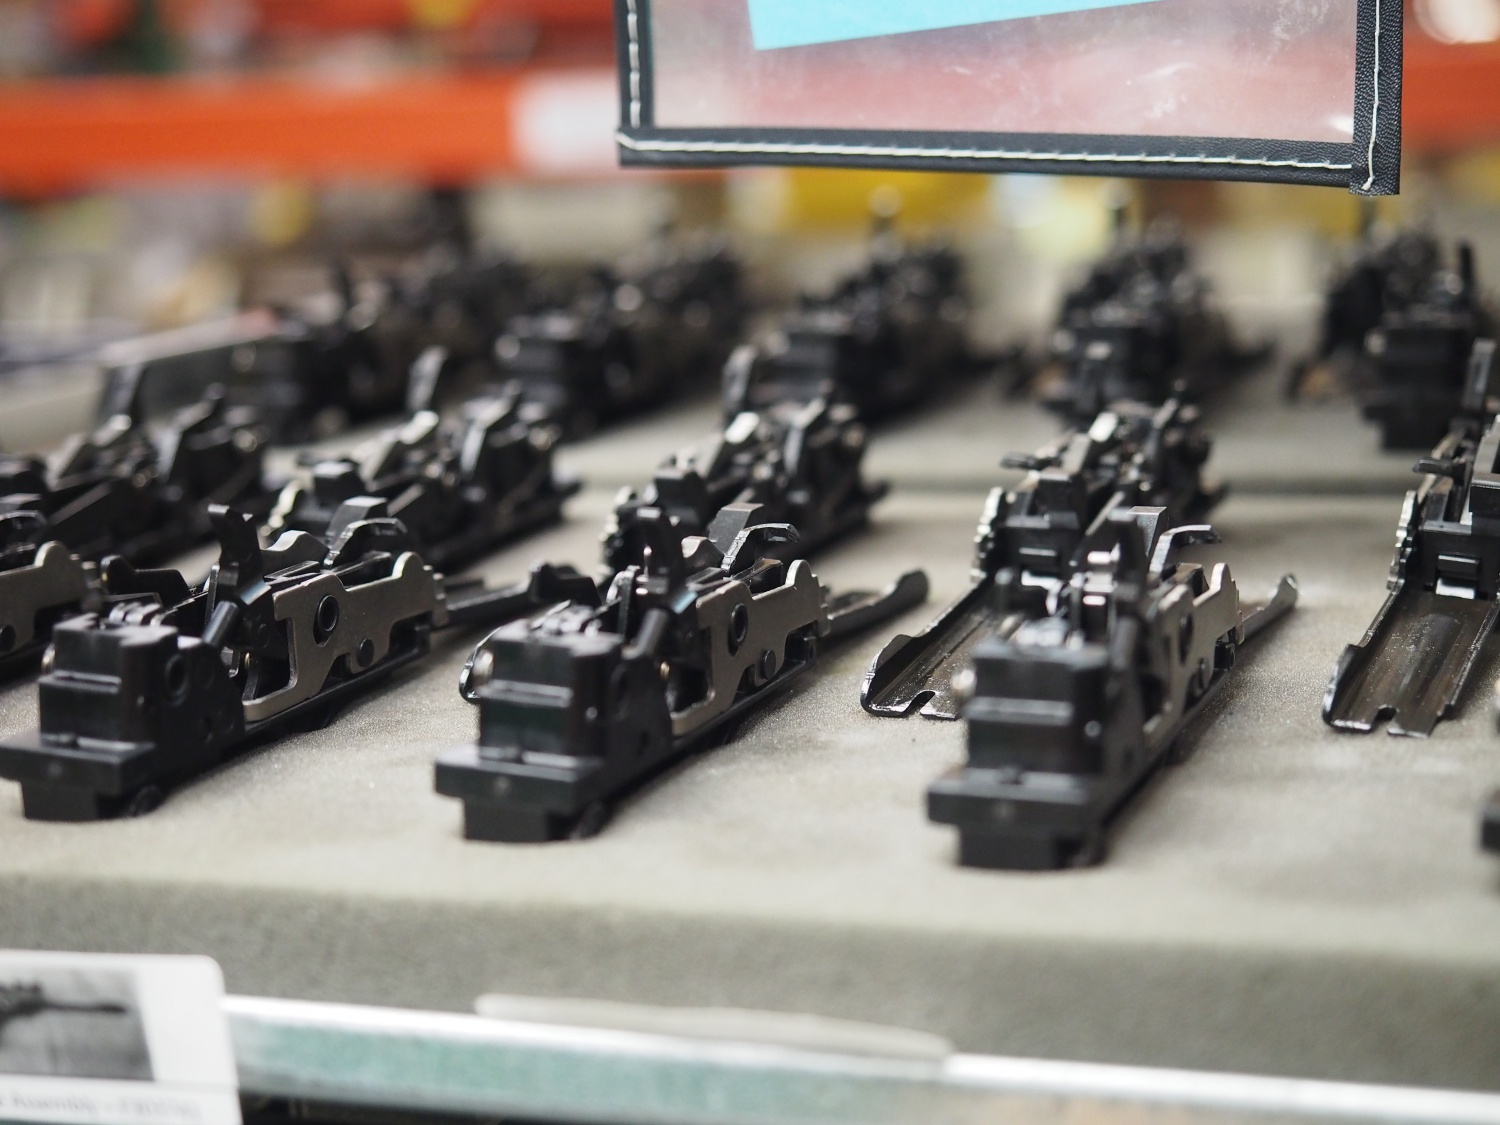 Trigger groups waiting for installation